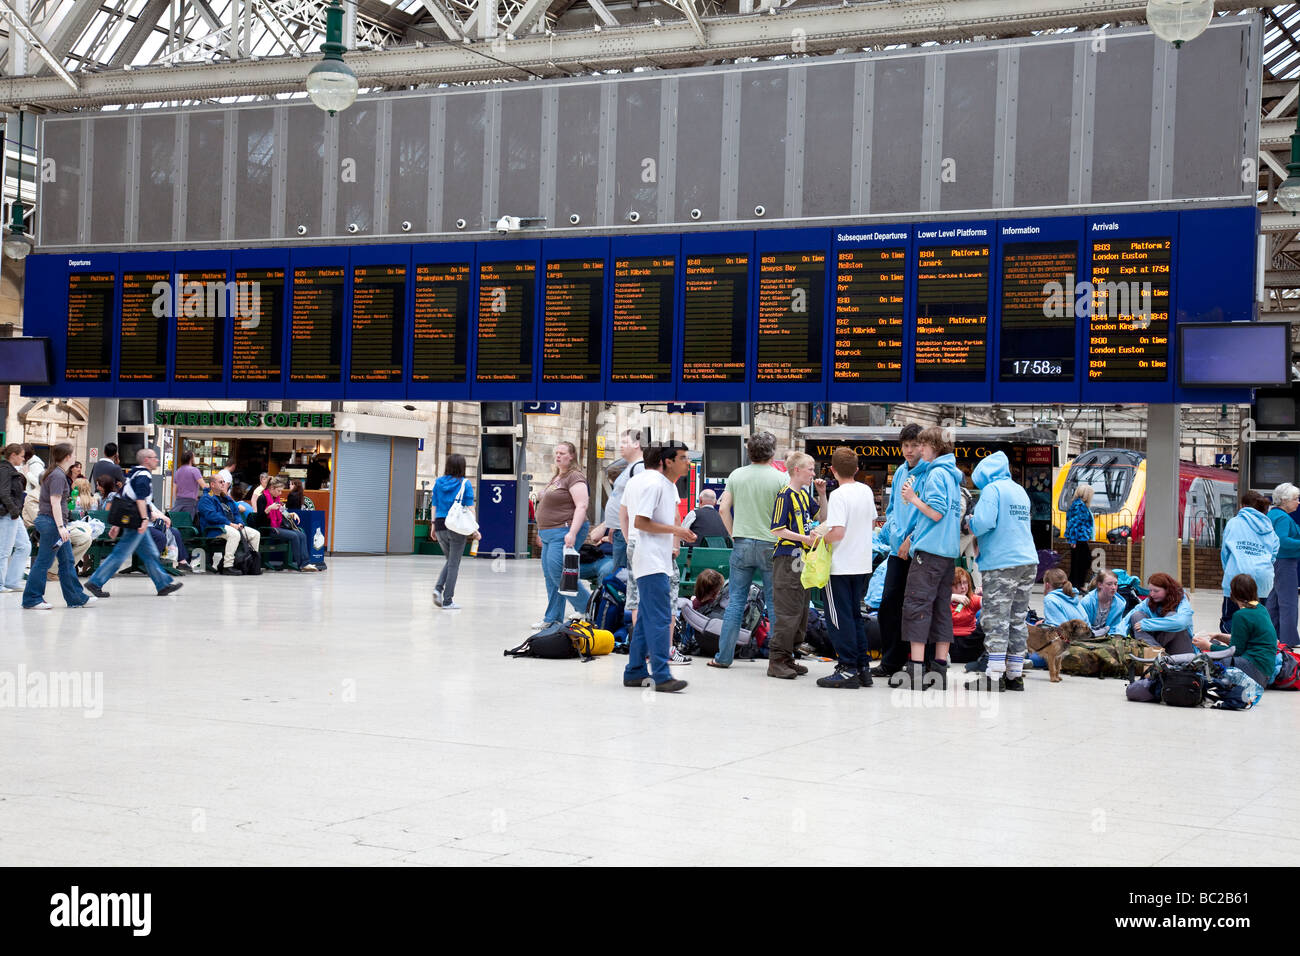 travellers waiting for their trains in Glasgow Central Station, Scotland, UK - Stock Image